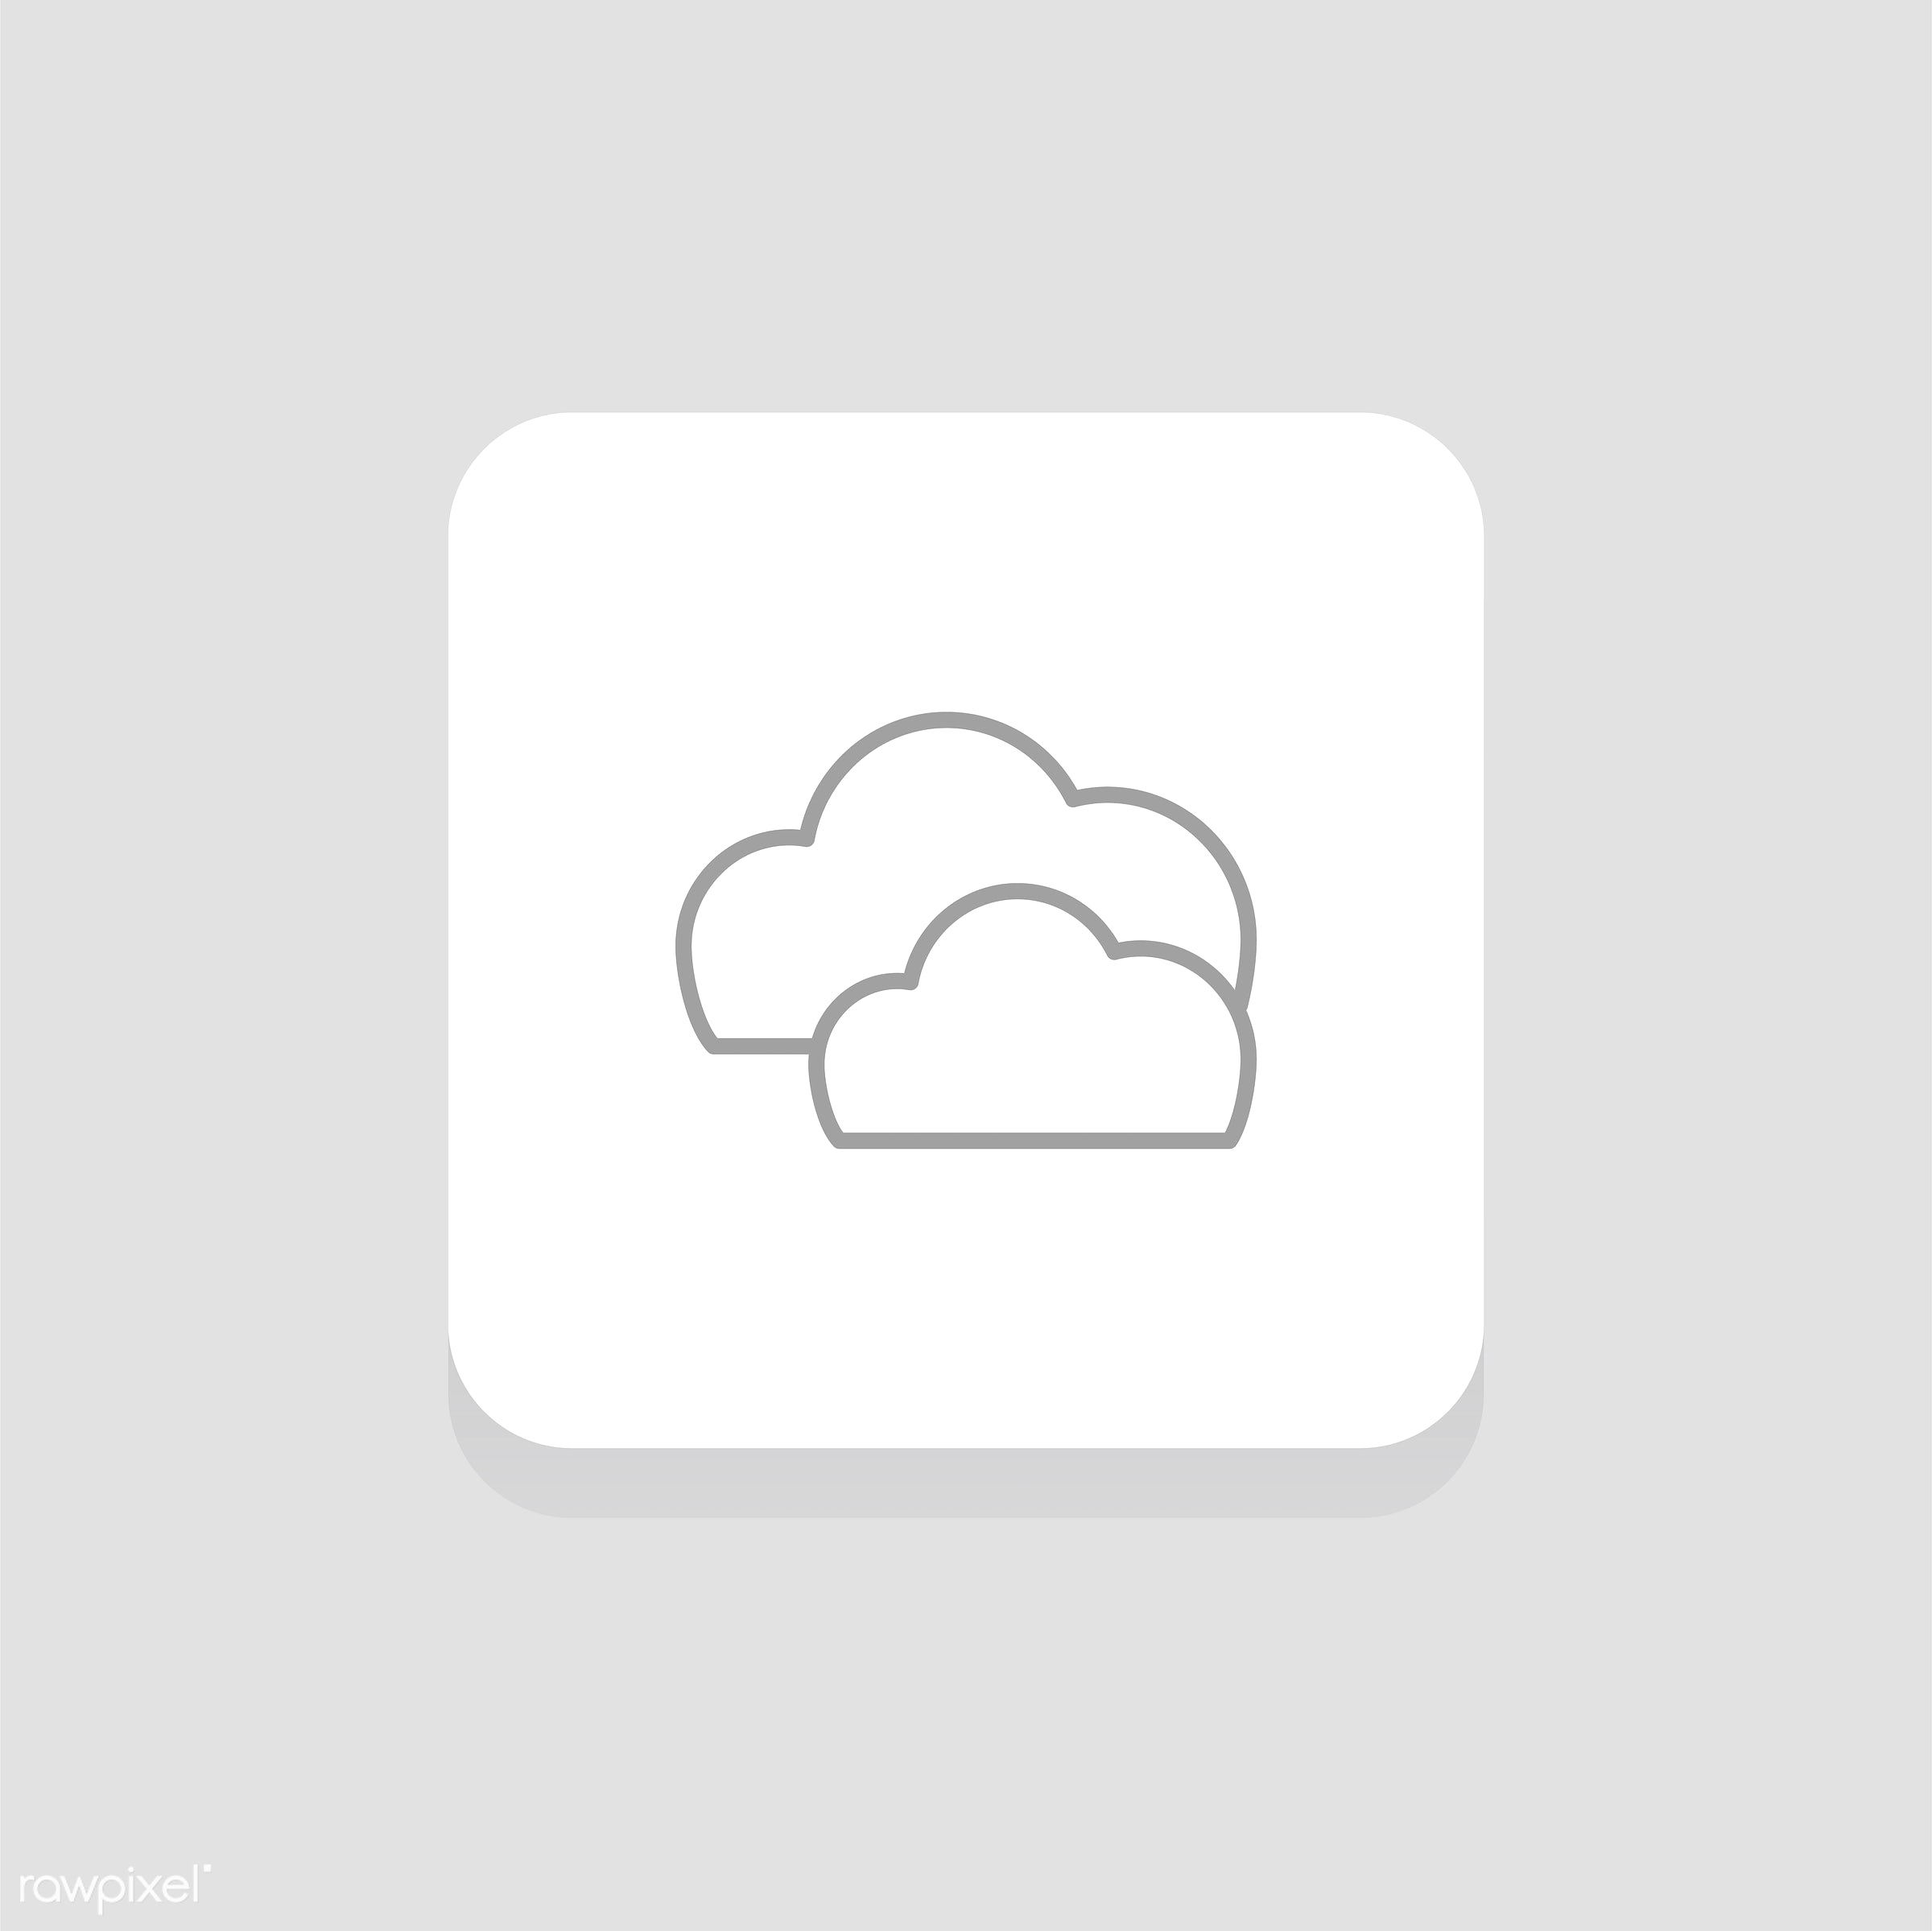 Vector of weather icon - design, flat, graphic, icon, illustration, isolated, layout, platform, Season, style, symbol,...